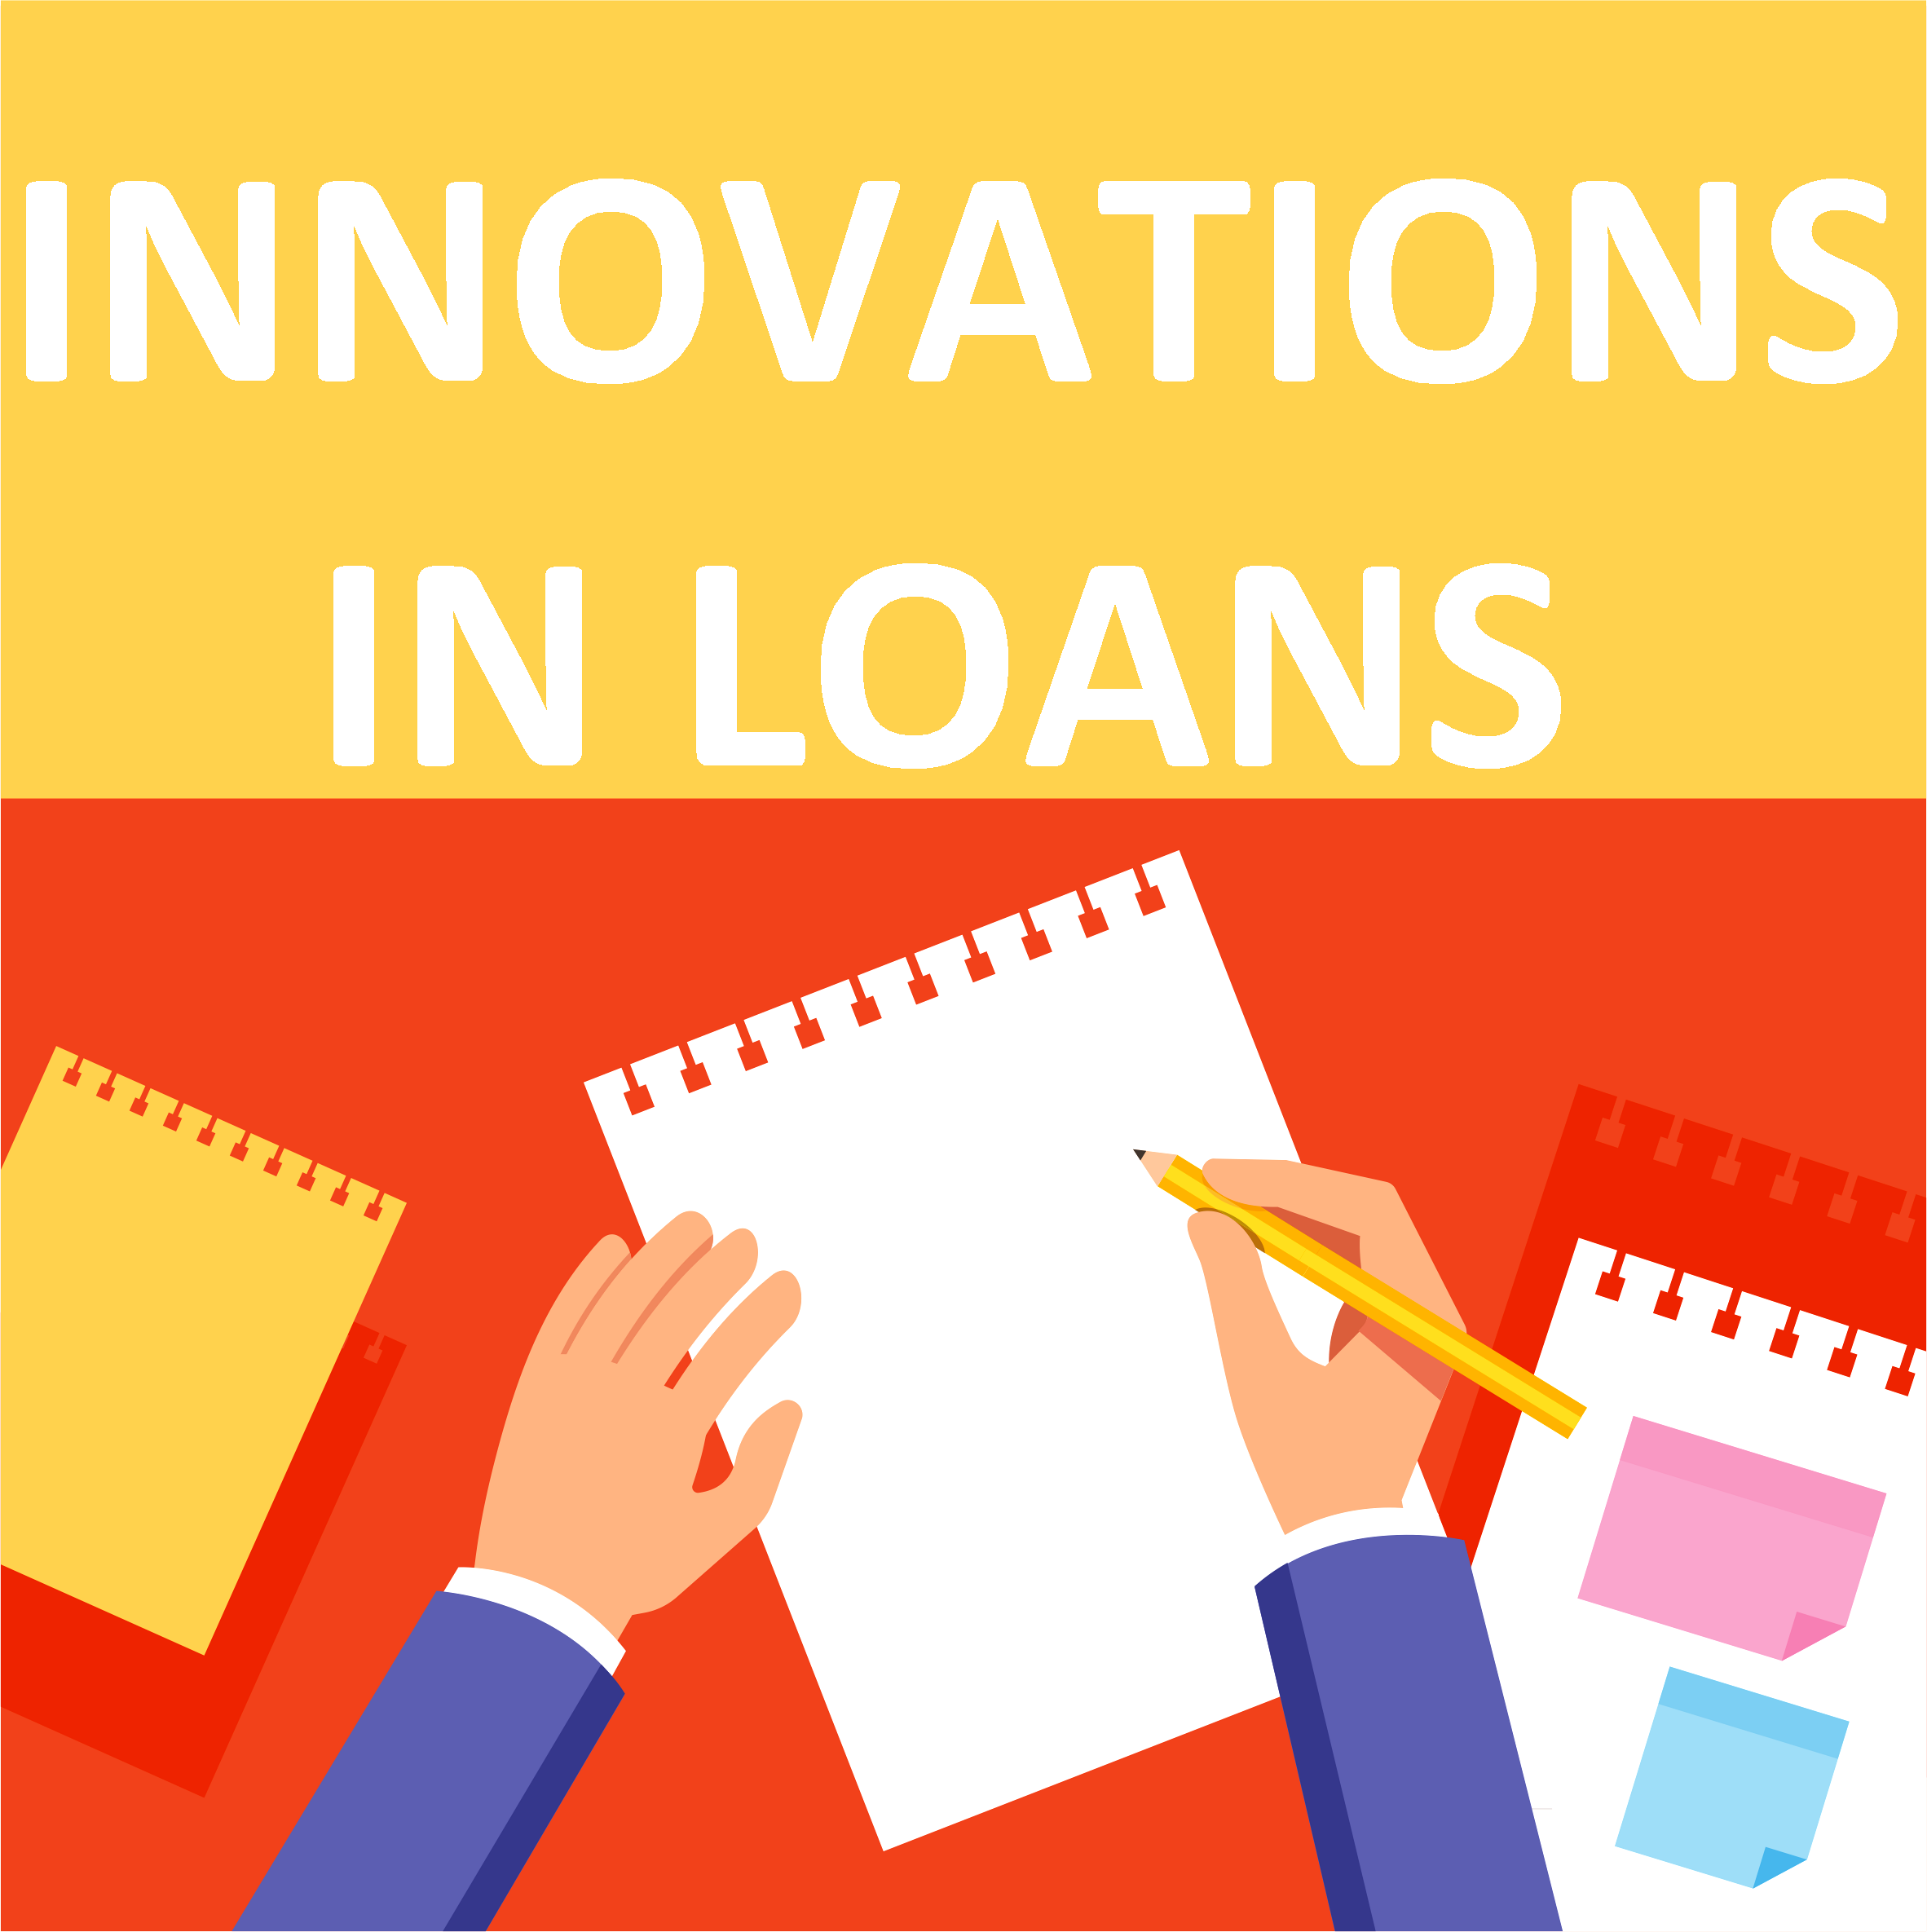 Innovations In Loans